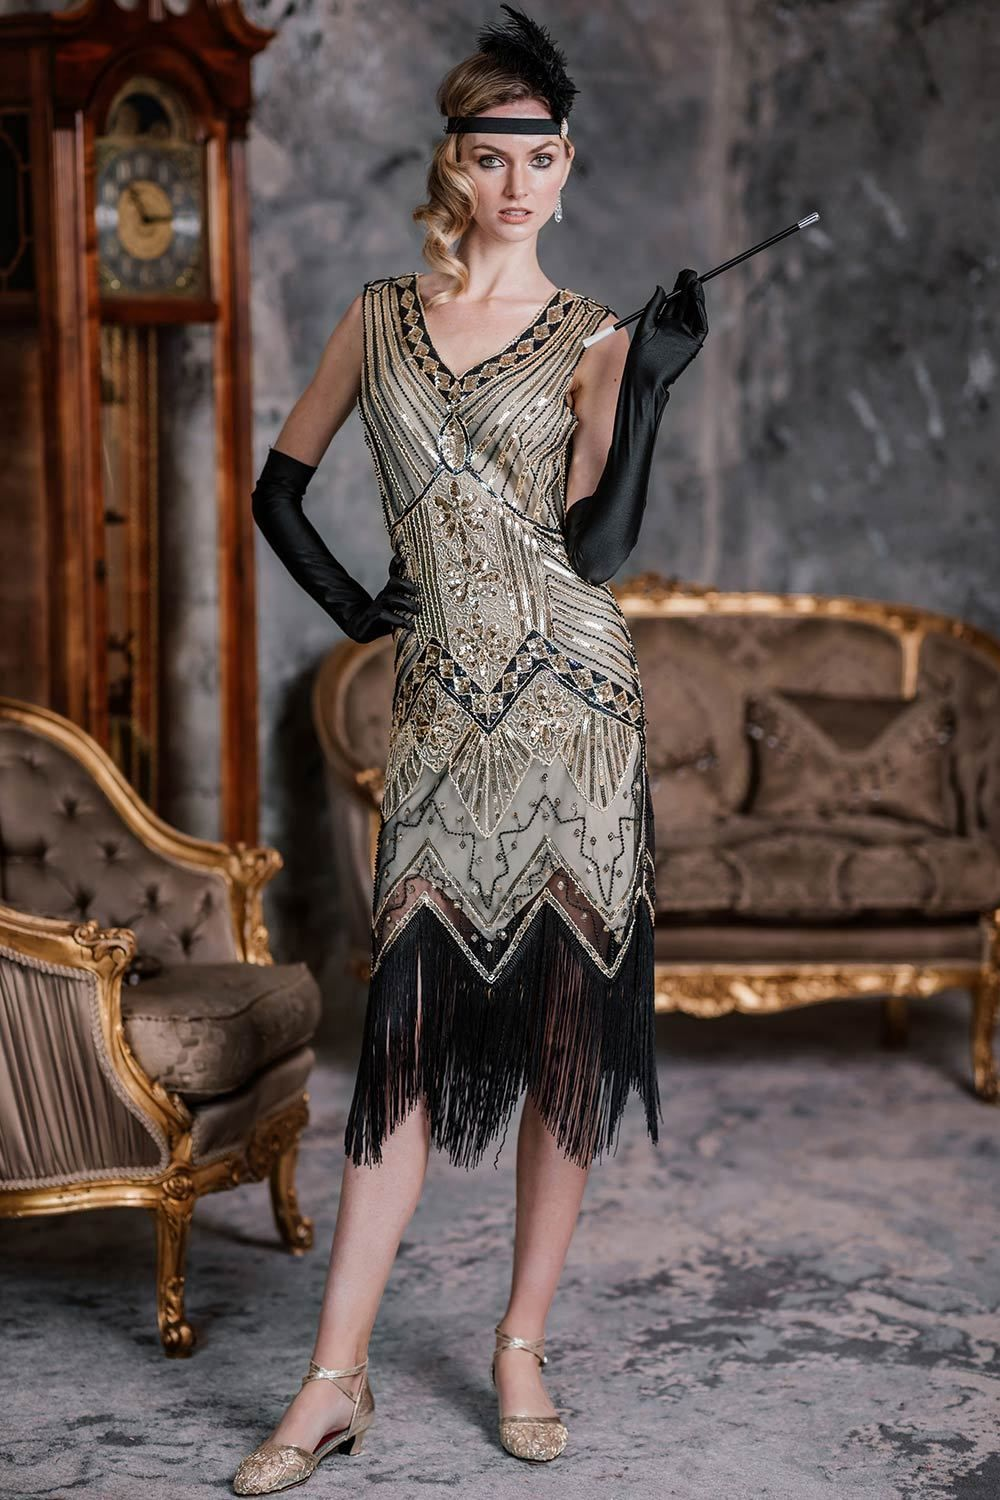 Champagne 1920s Sequined Flapper Dress In 2020 1920s Inspired Dresses Vintage Flapper Dress 1920s Fashion